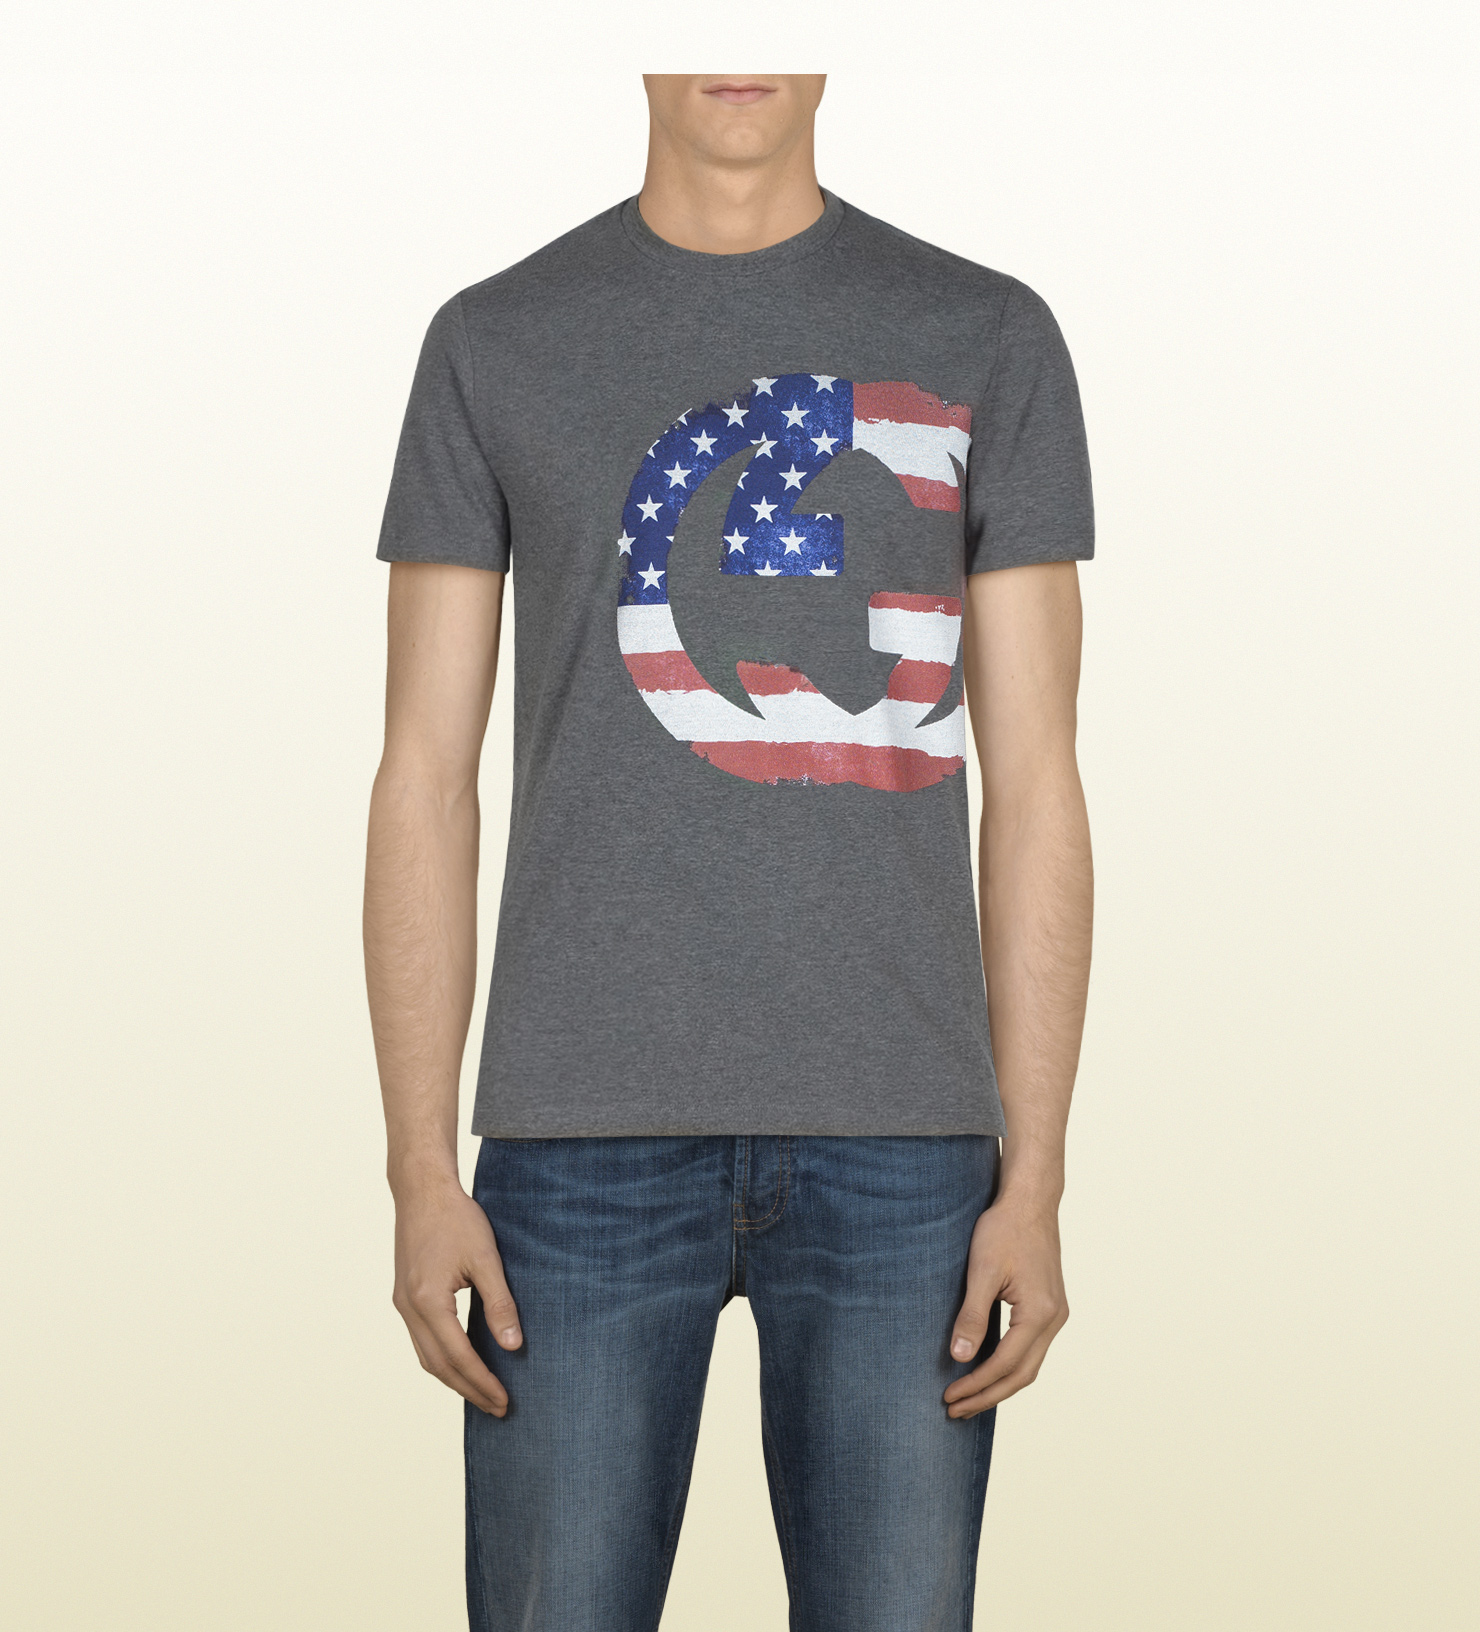 49ac7c0e78675c Lyst - Gucci Mens Usa Gg Flag Collection Tshirt in Gray for Men